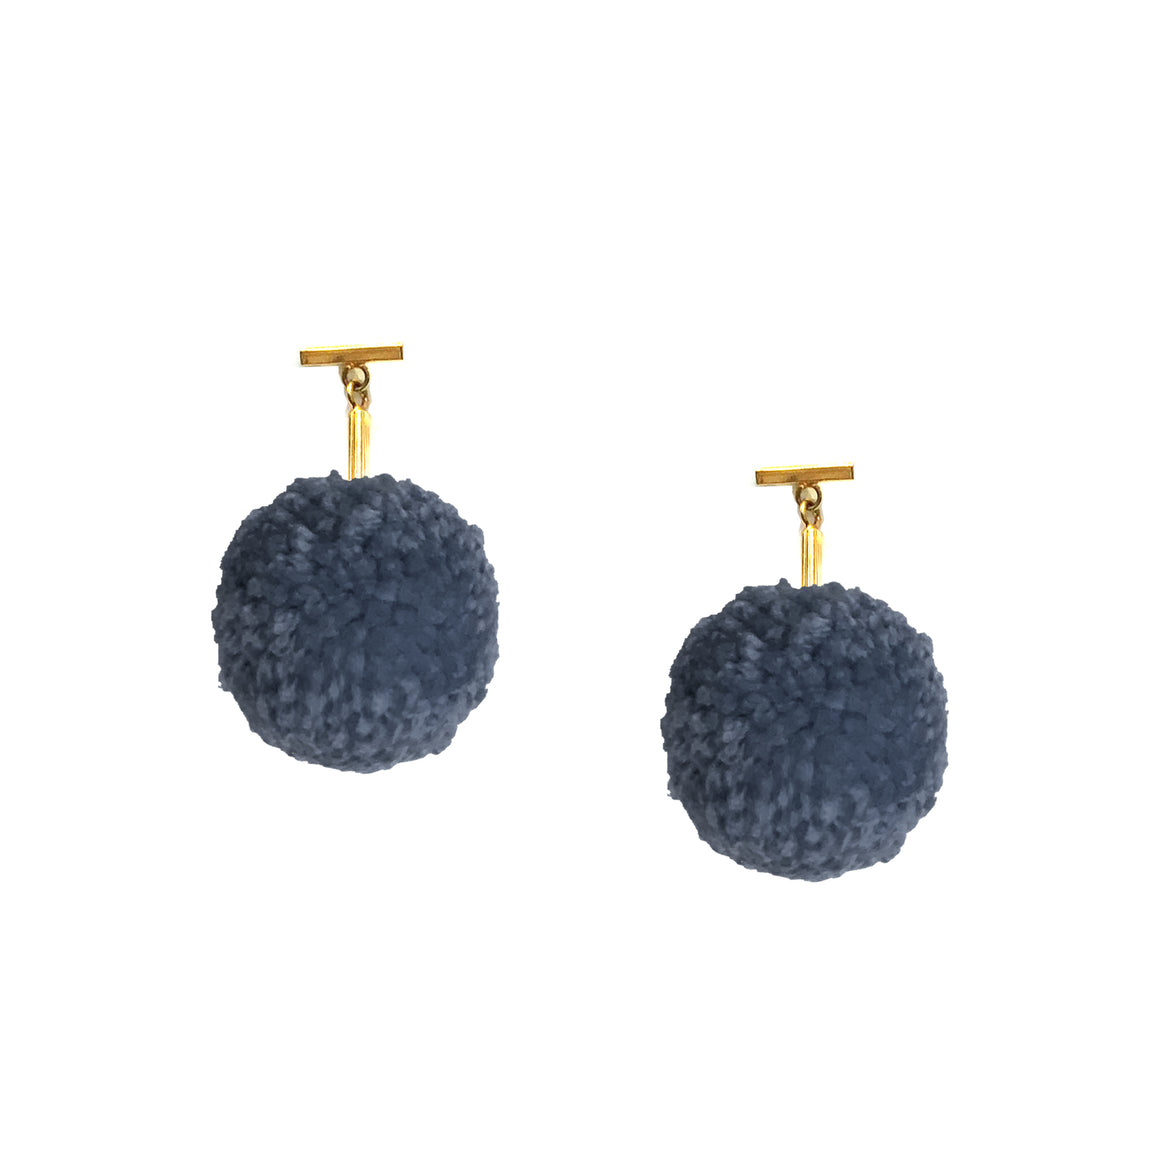 "2"" NAVY YARN POM POM T STUD EARRINGS, Earrings, Tuleste, Tuleste"